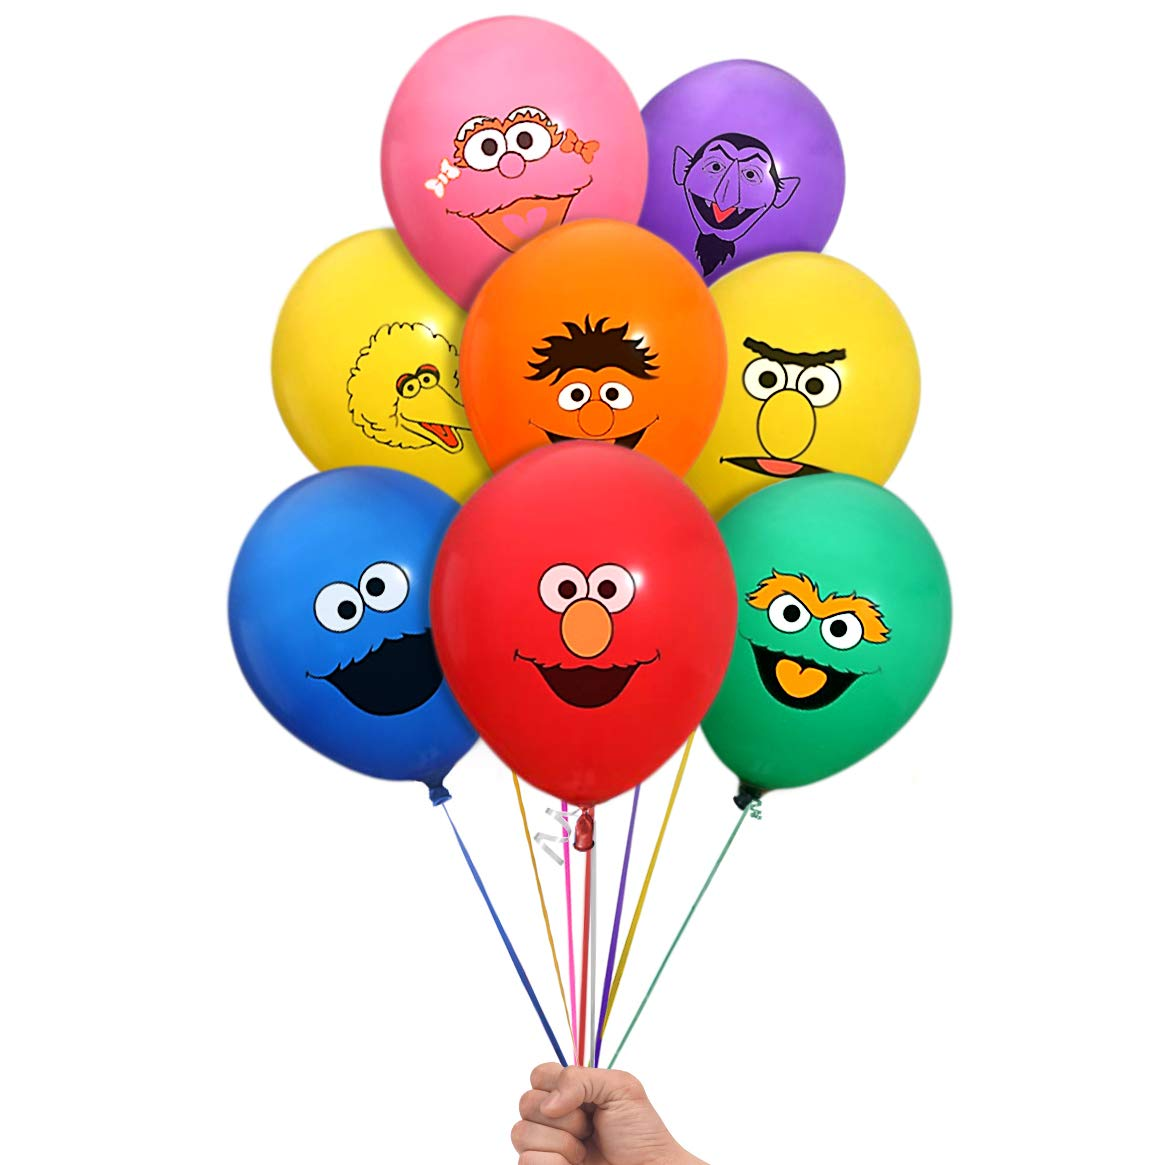 Sesame Street Elmo and Friends 24 Count Party Balloon Pack - Large 12'' Latex Balloons